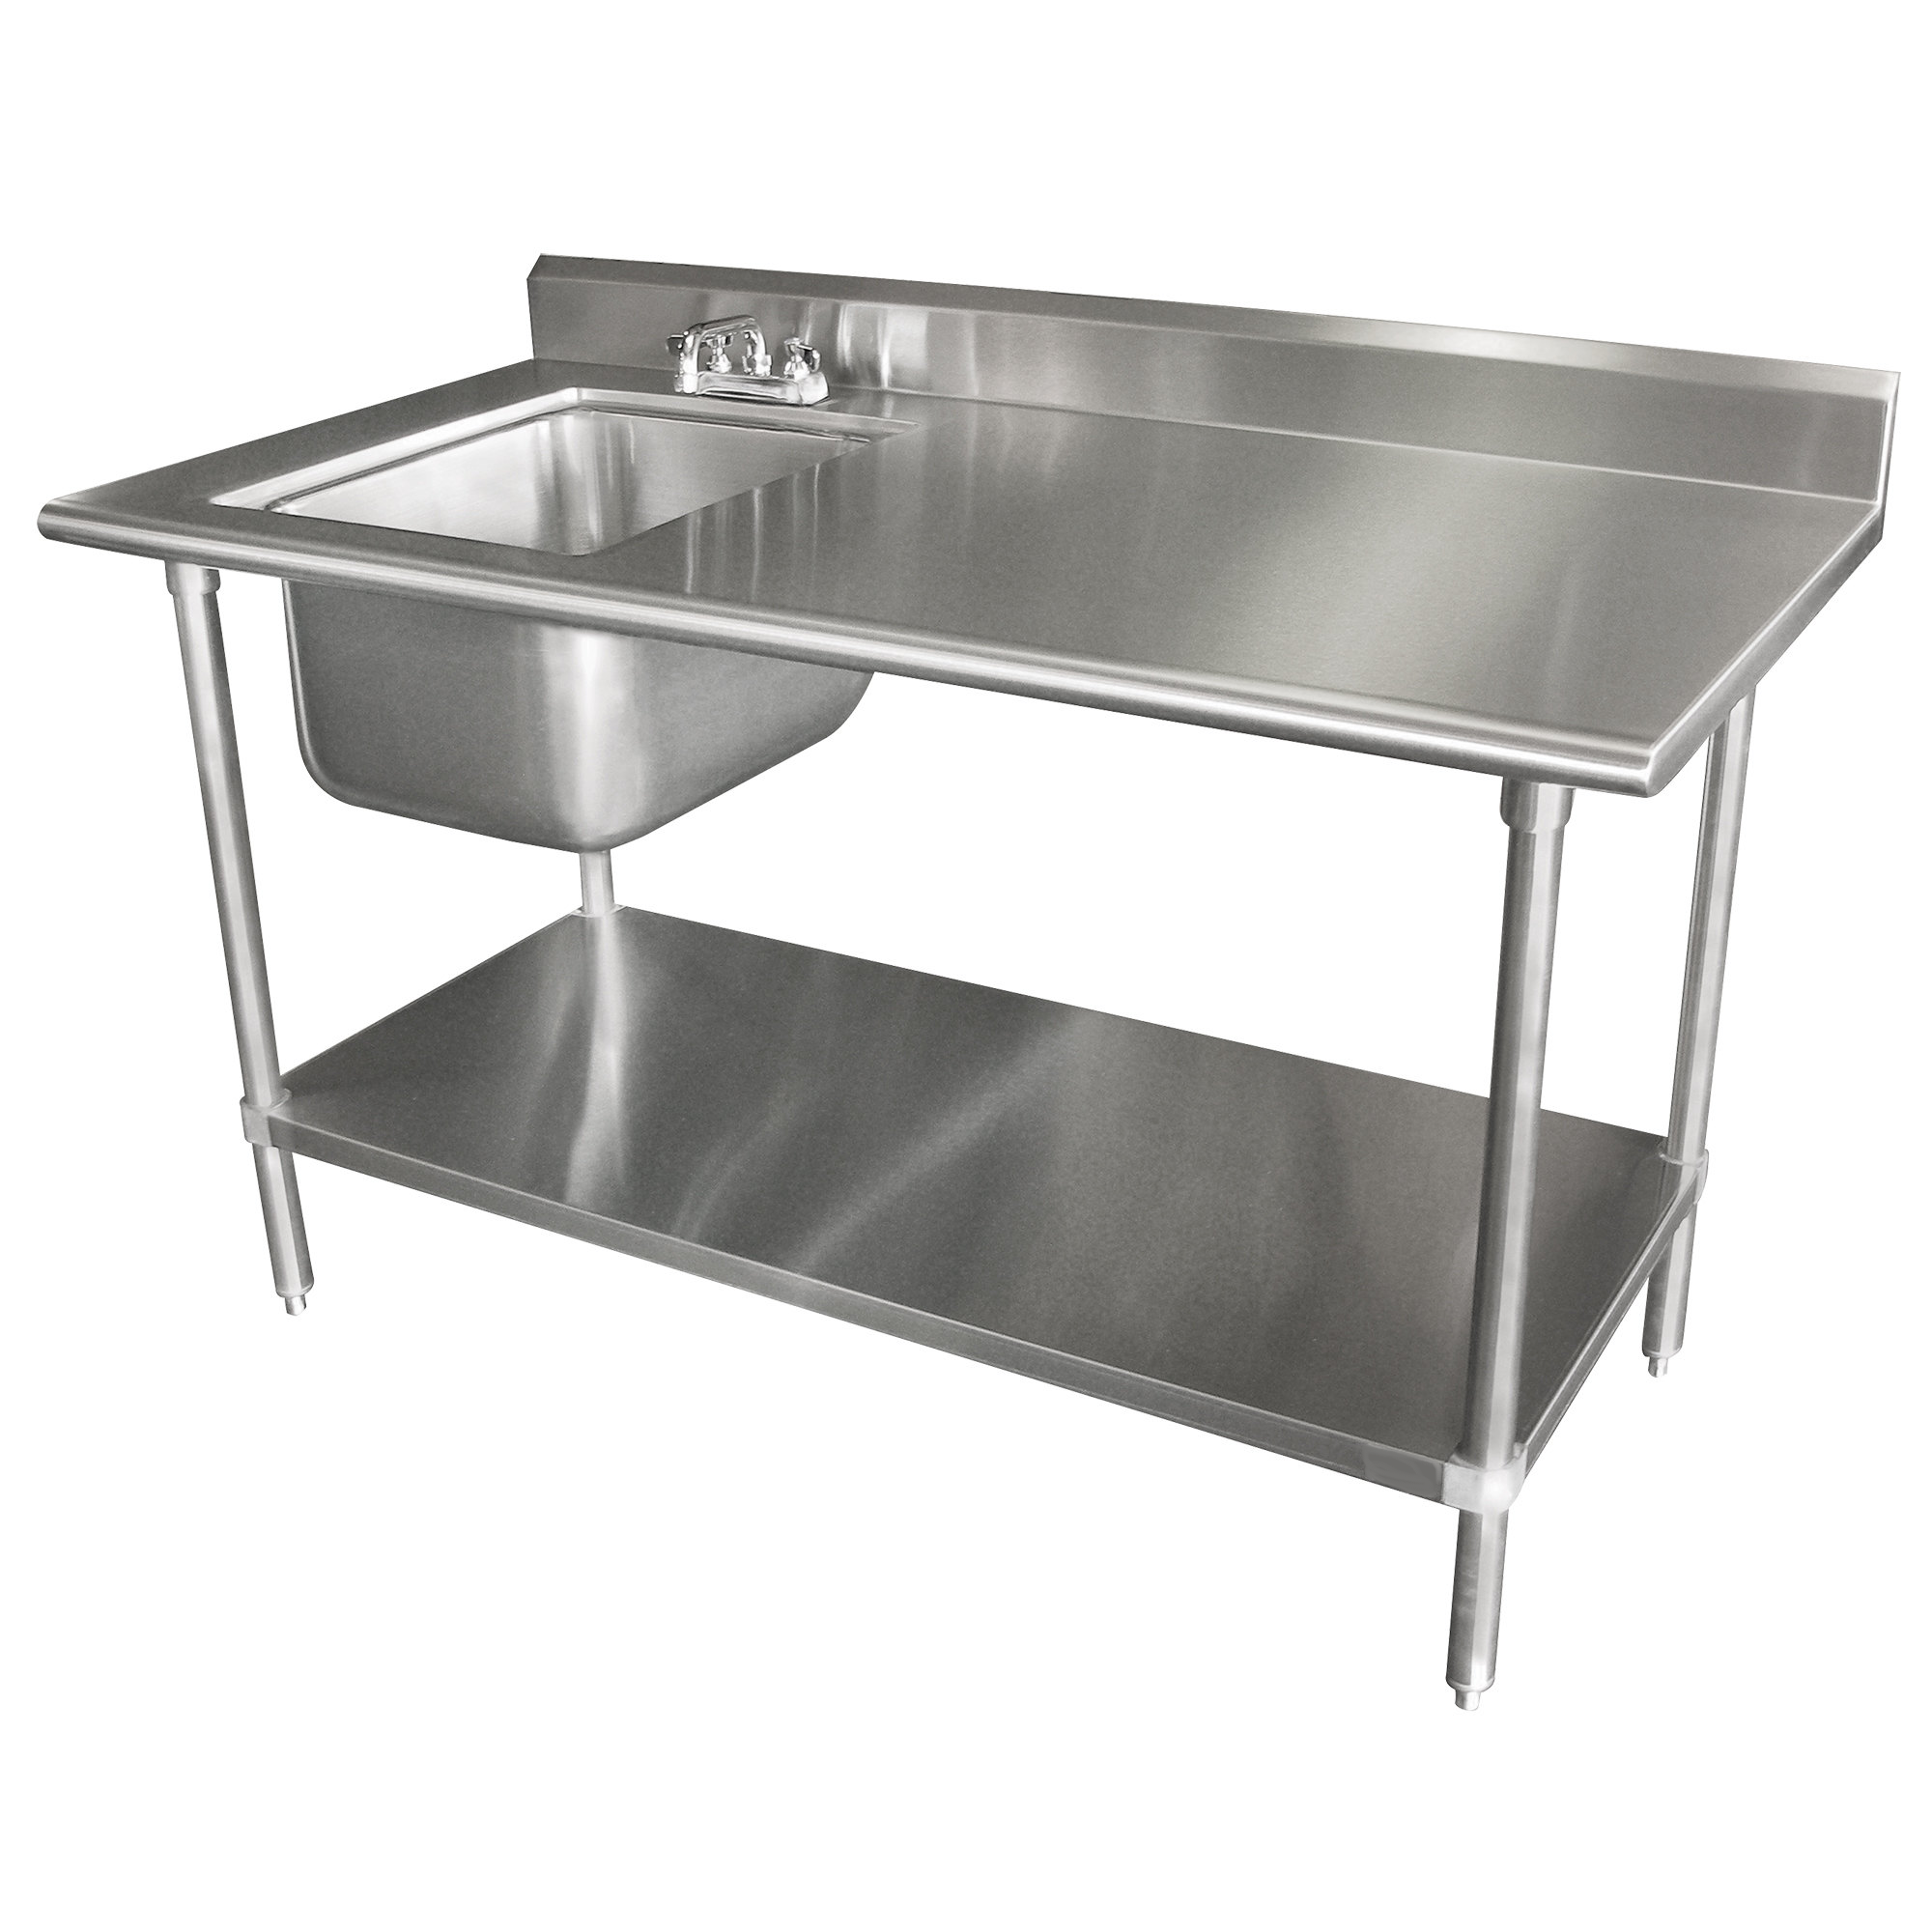 Stainless Steel Work Prep Table With Sink 30 X 72 With 5 Backsplash Stainless Steel Work Table Stainless Steel Kitchen Stainless Steel Kitchen Table